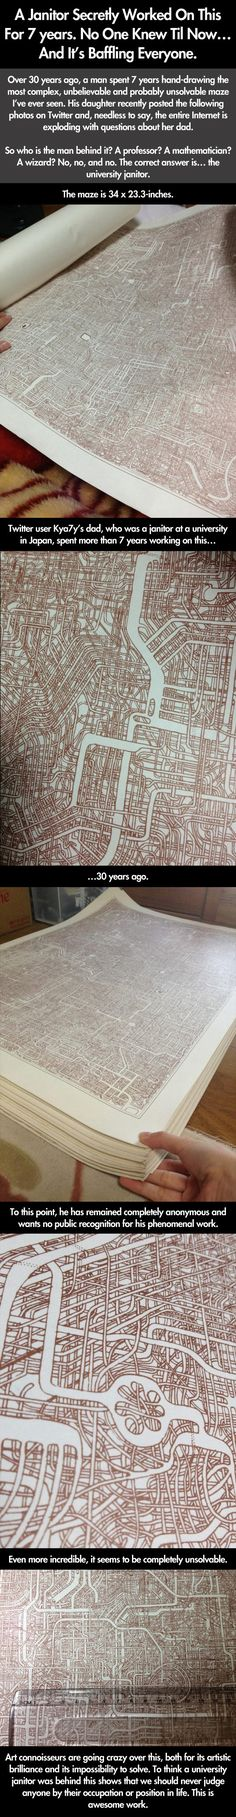 The unsolvable maze // funny pictures - funny photos - funny images - funny pics - funny quotes - #lol #humor #funnypictures